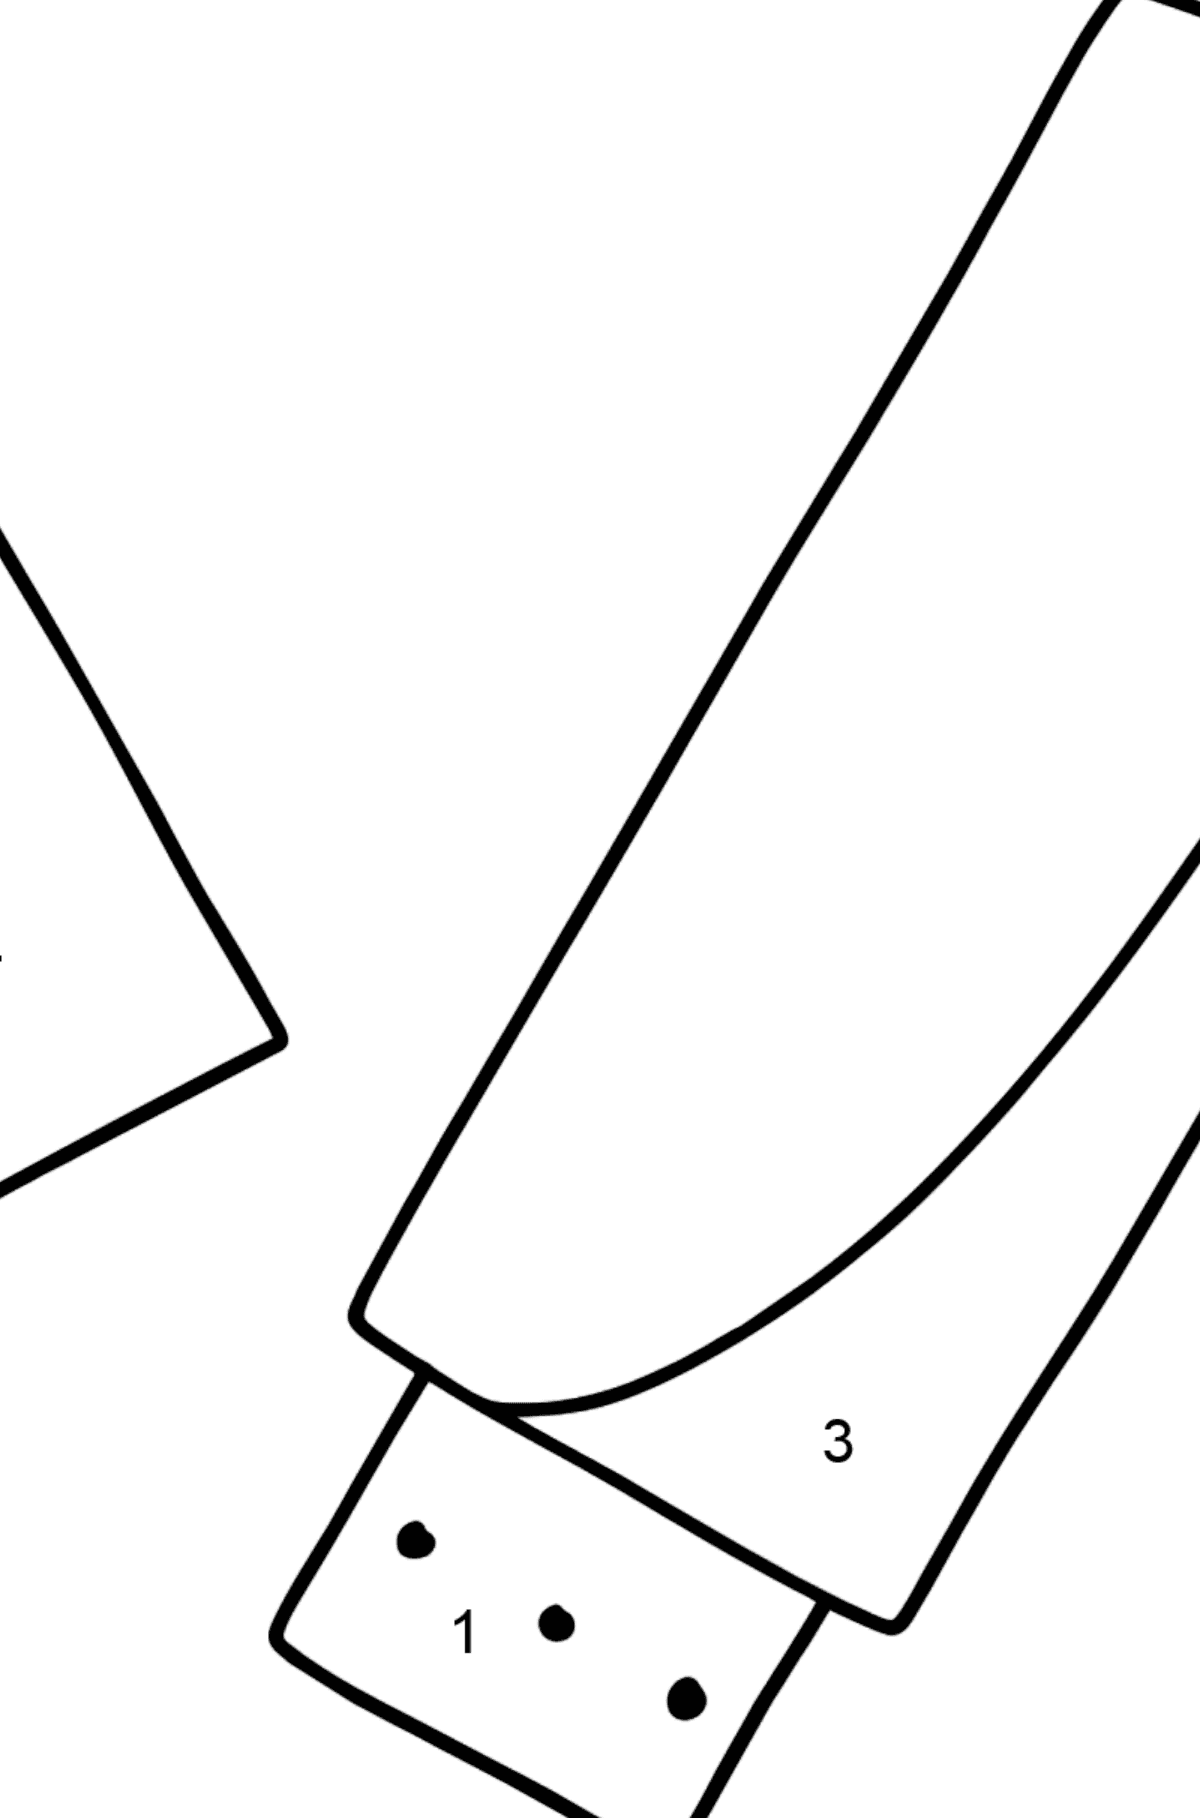 Flash Drive coloring page - Coloring by Numbers for Kids